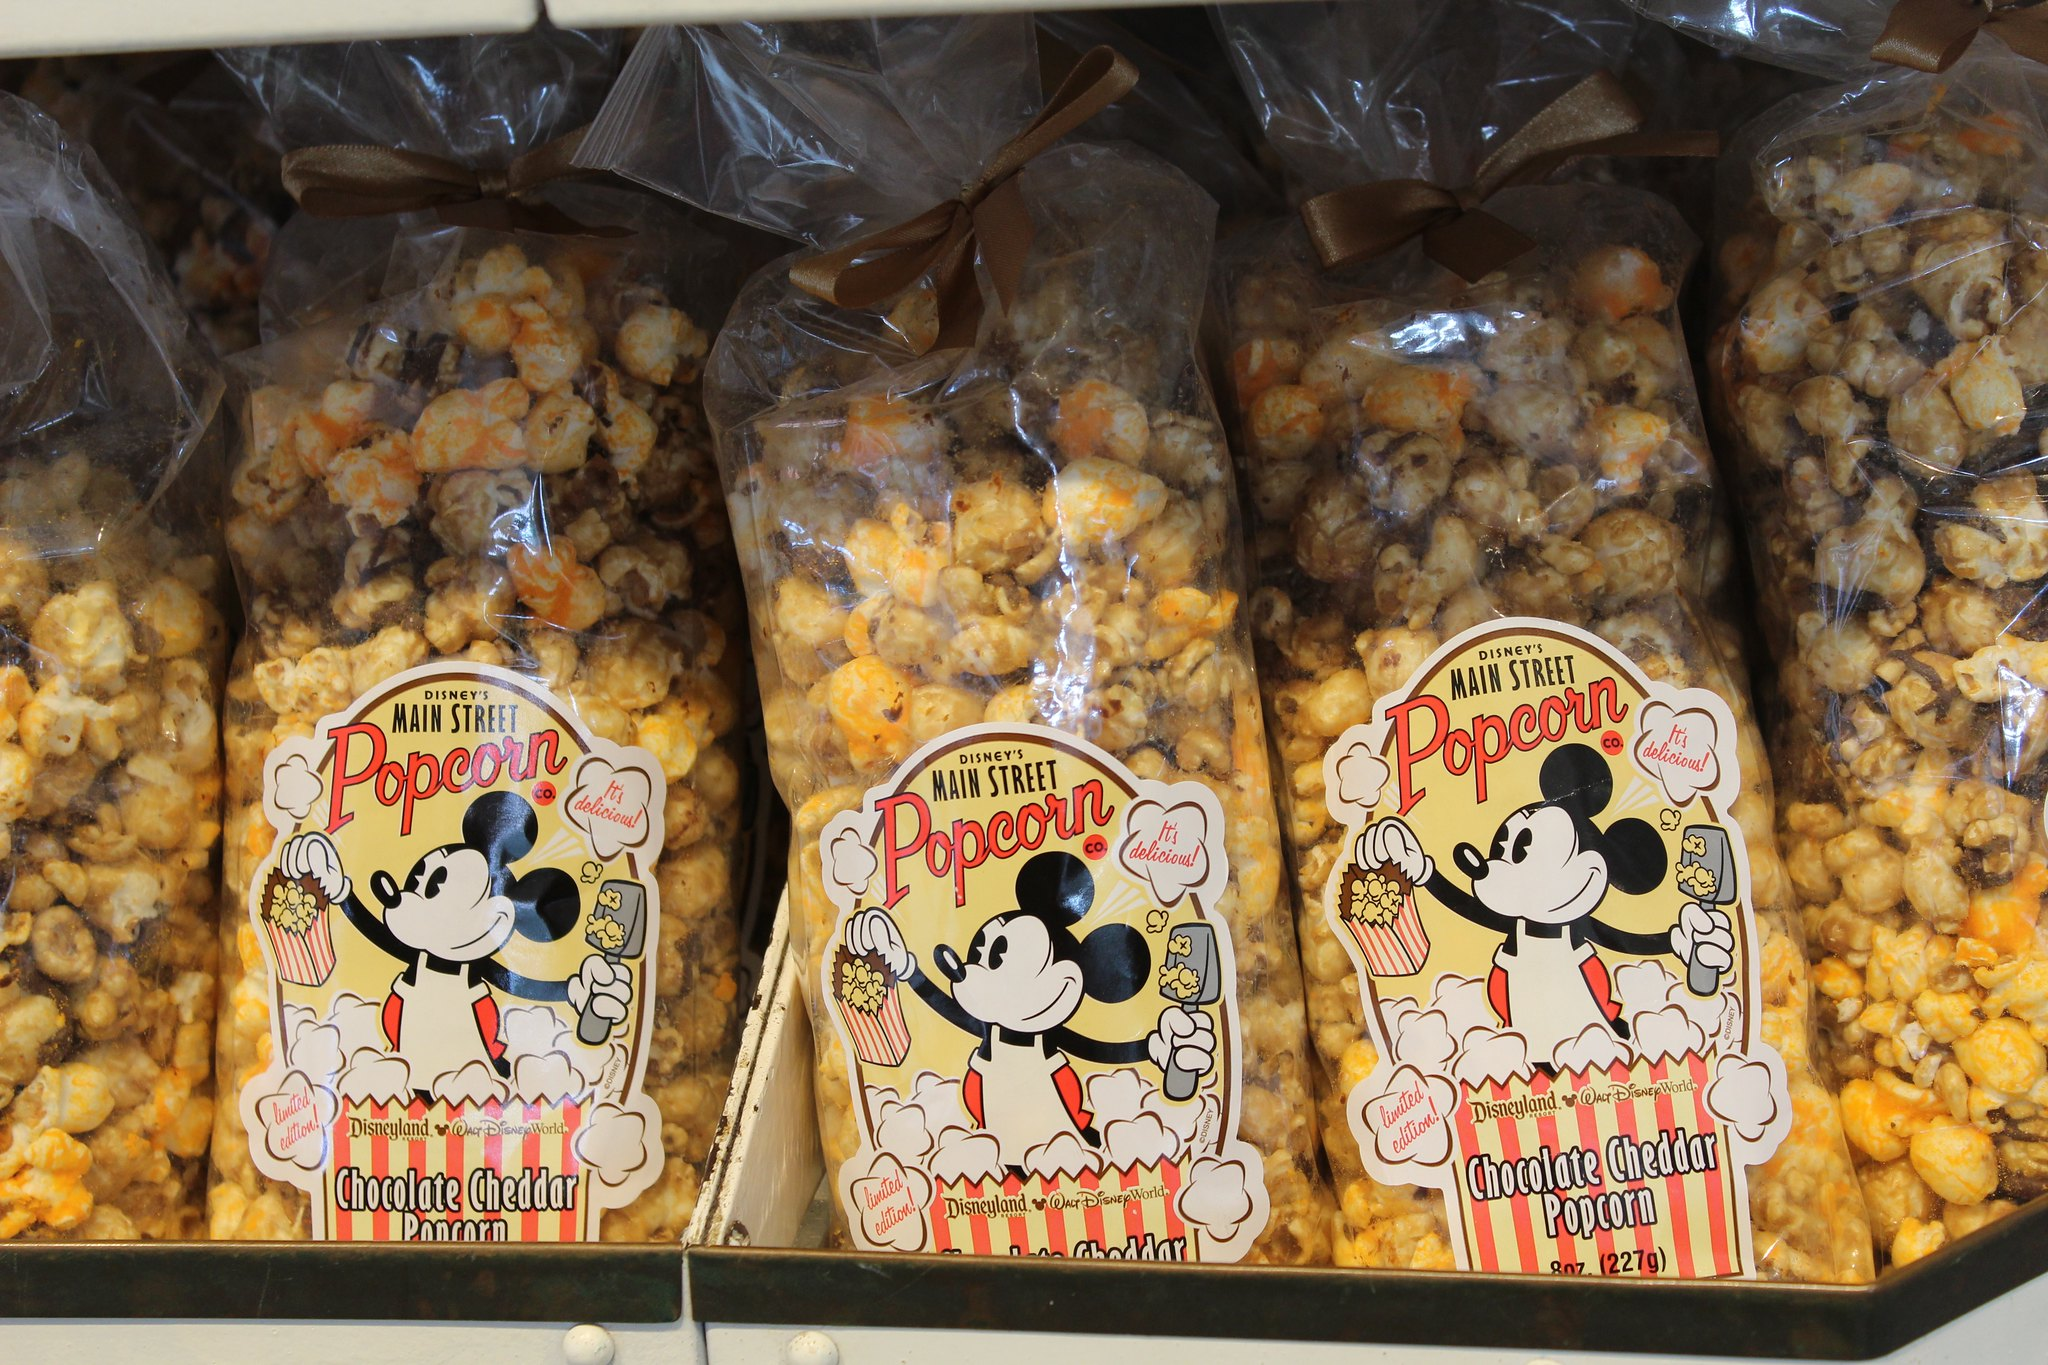 packets of popcorn with Mickey Mouse on them